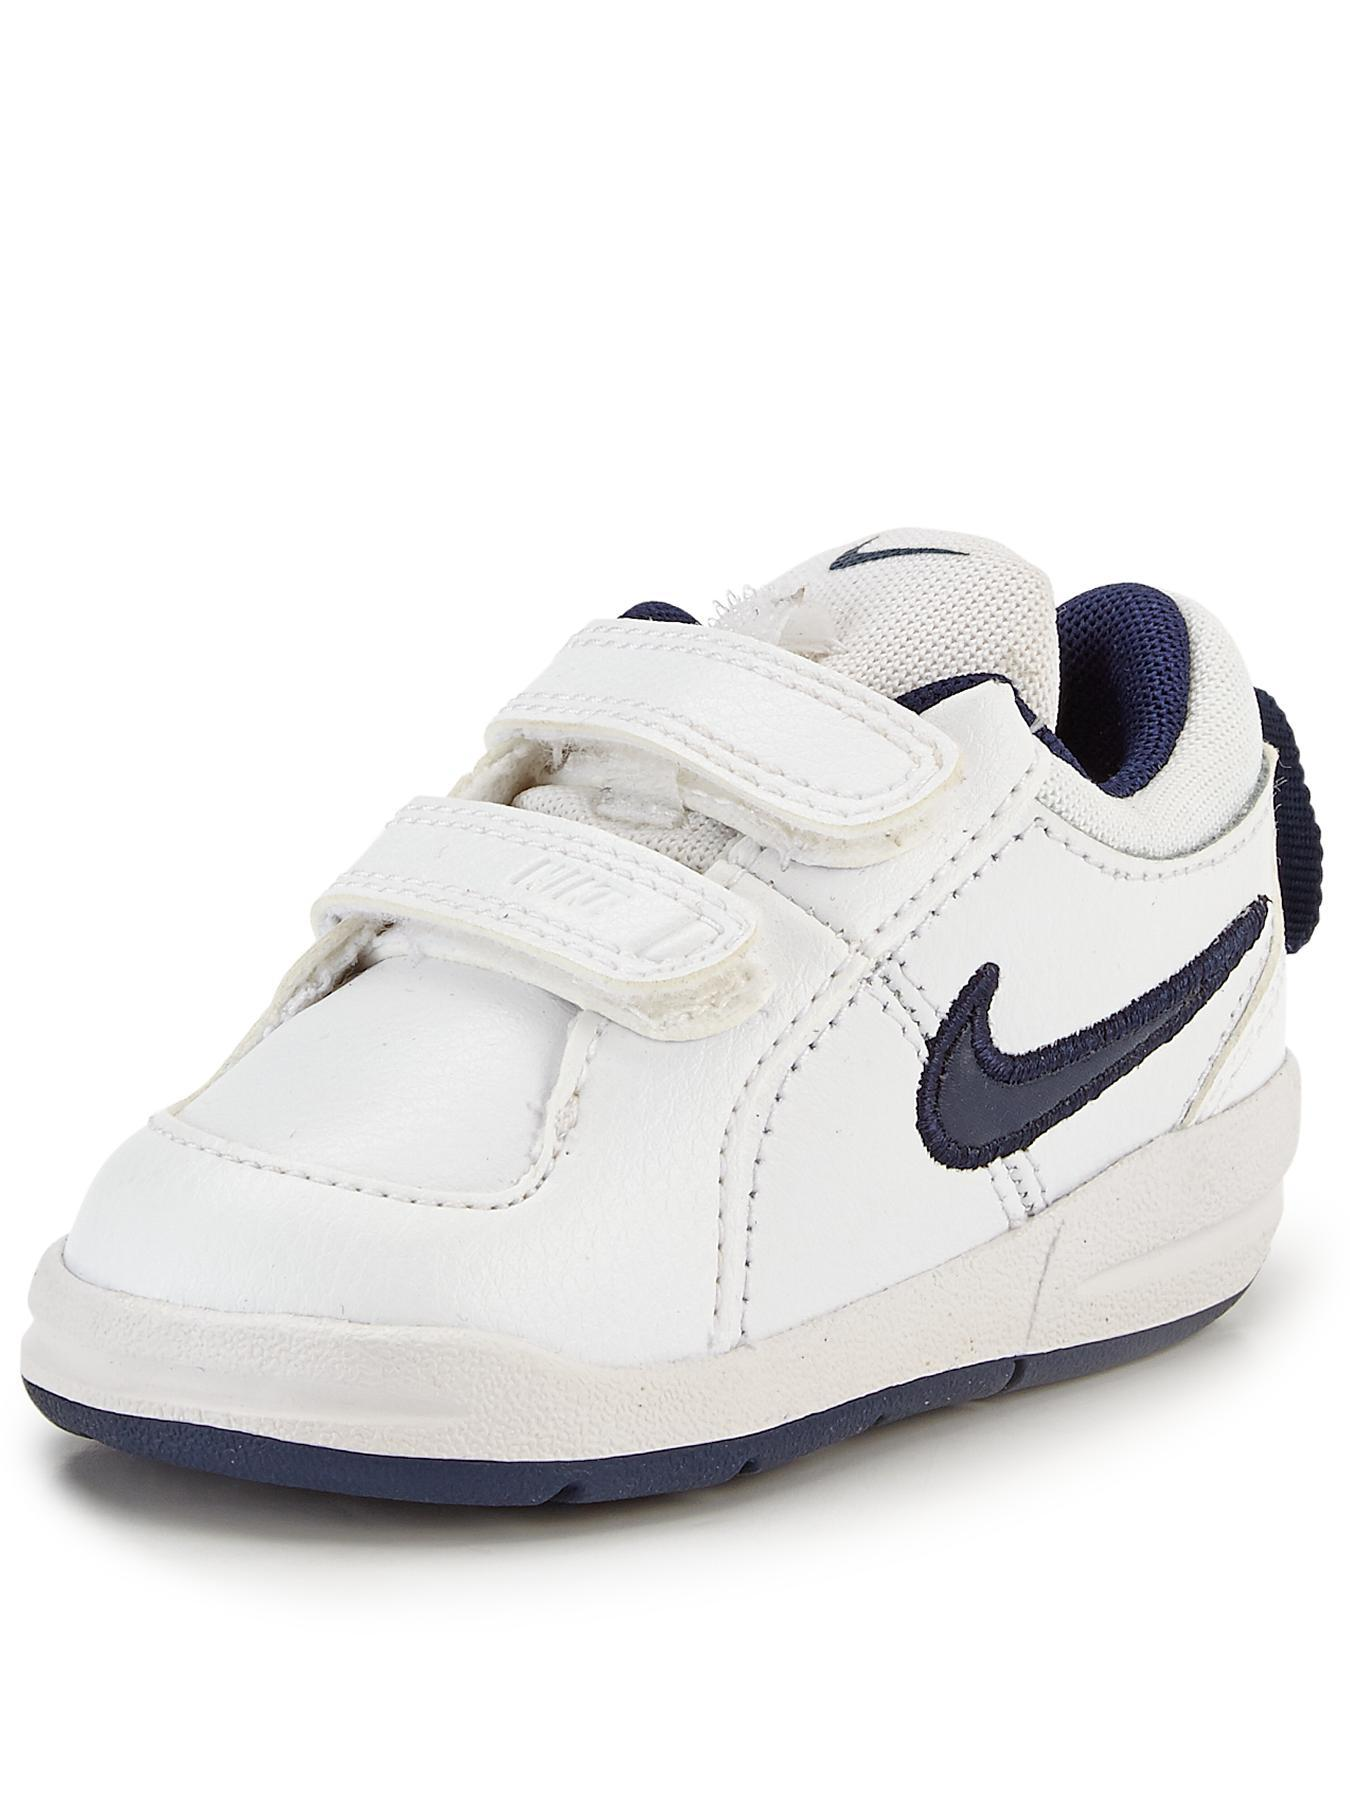 Nike Pico 4 Toddler Training Shoes - White, White